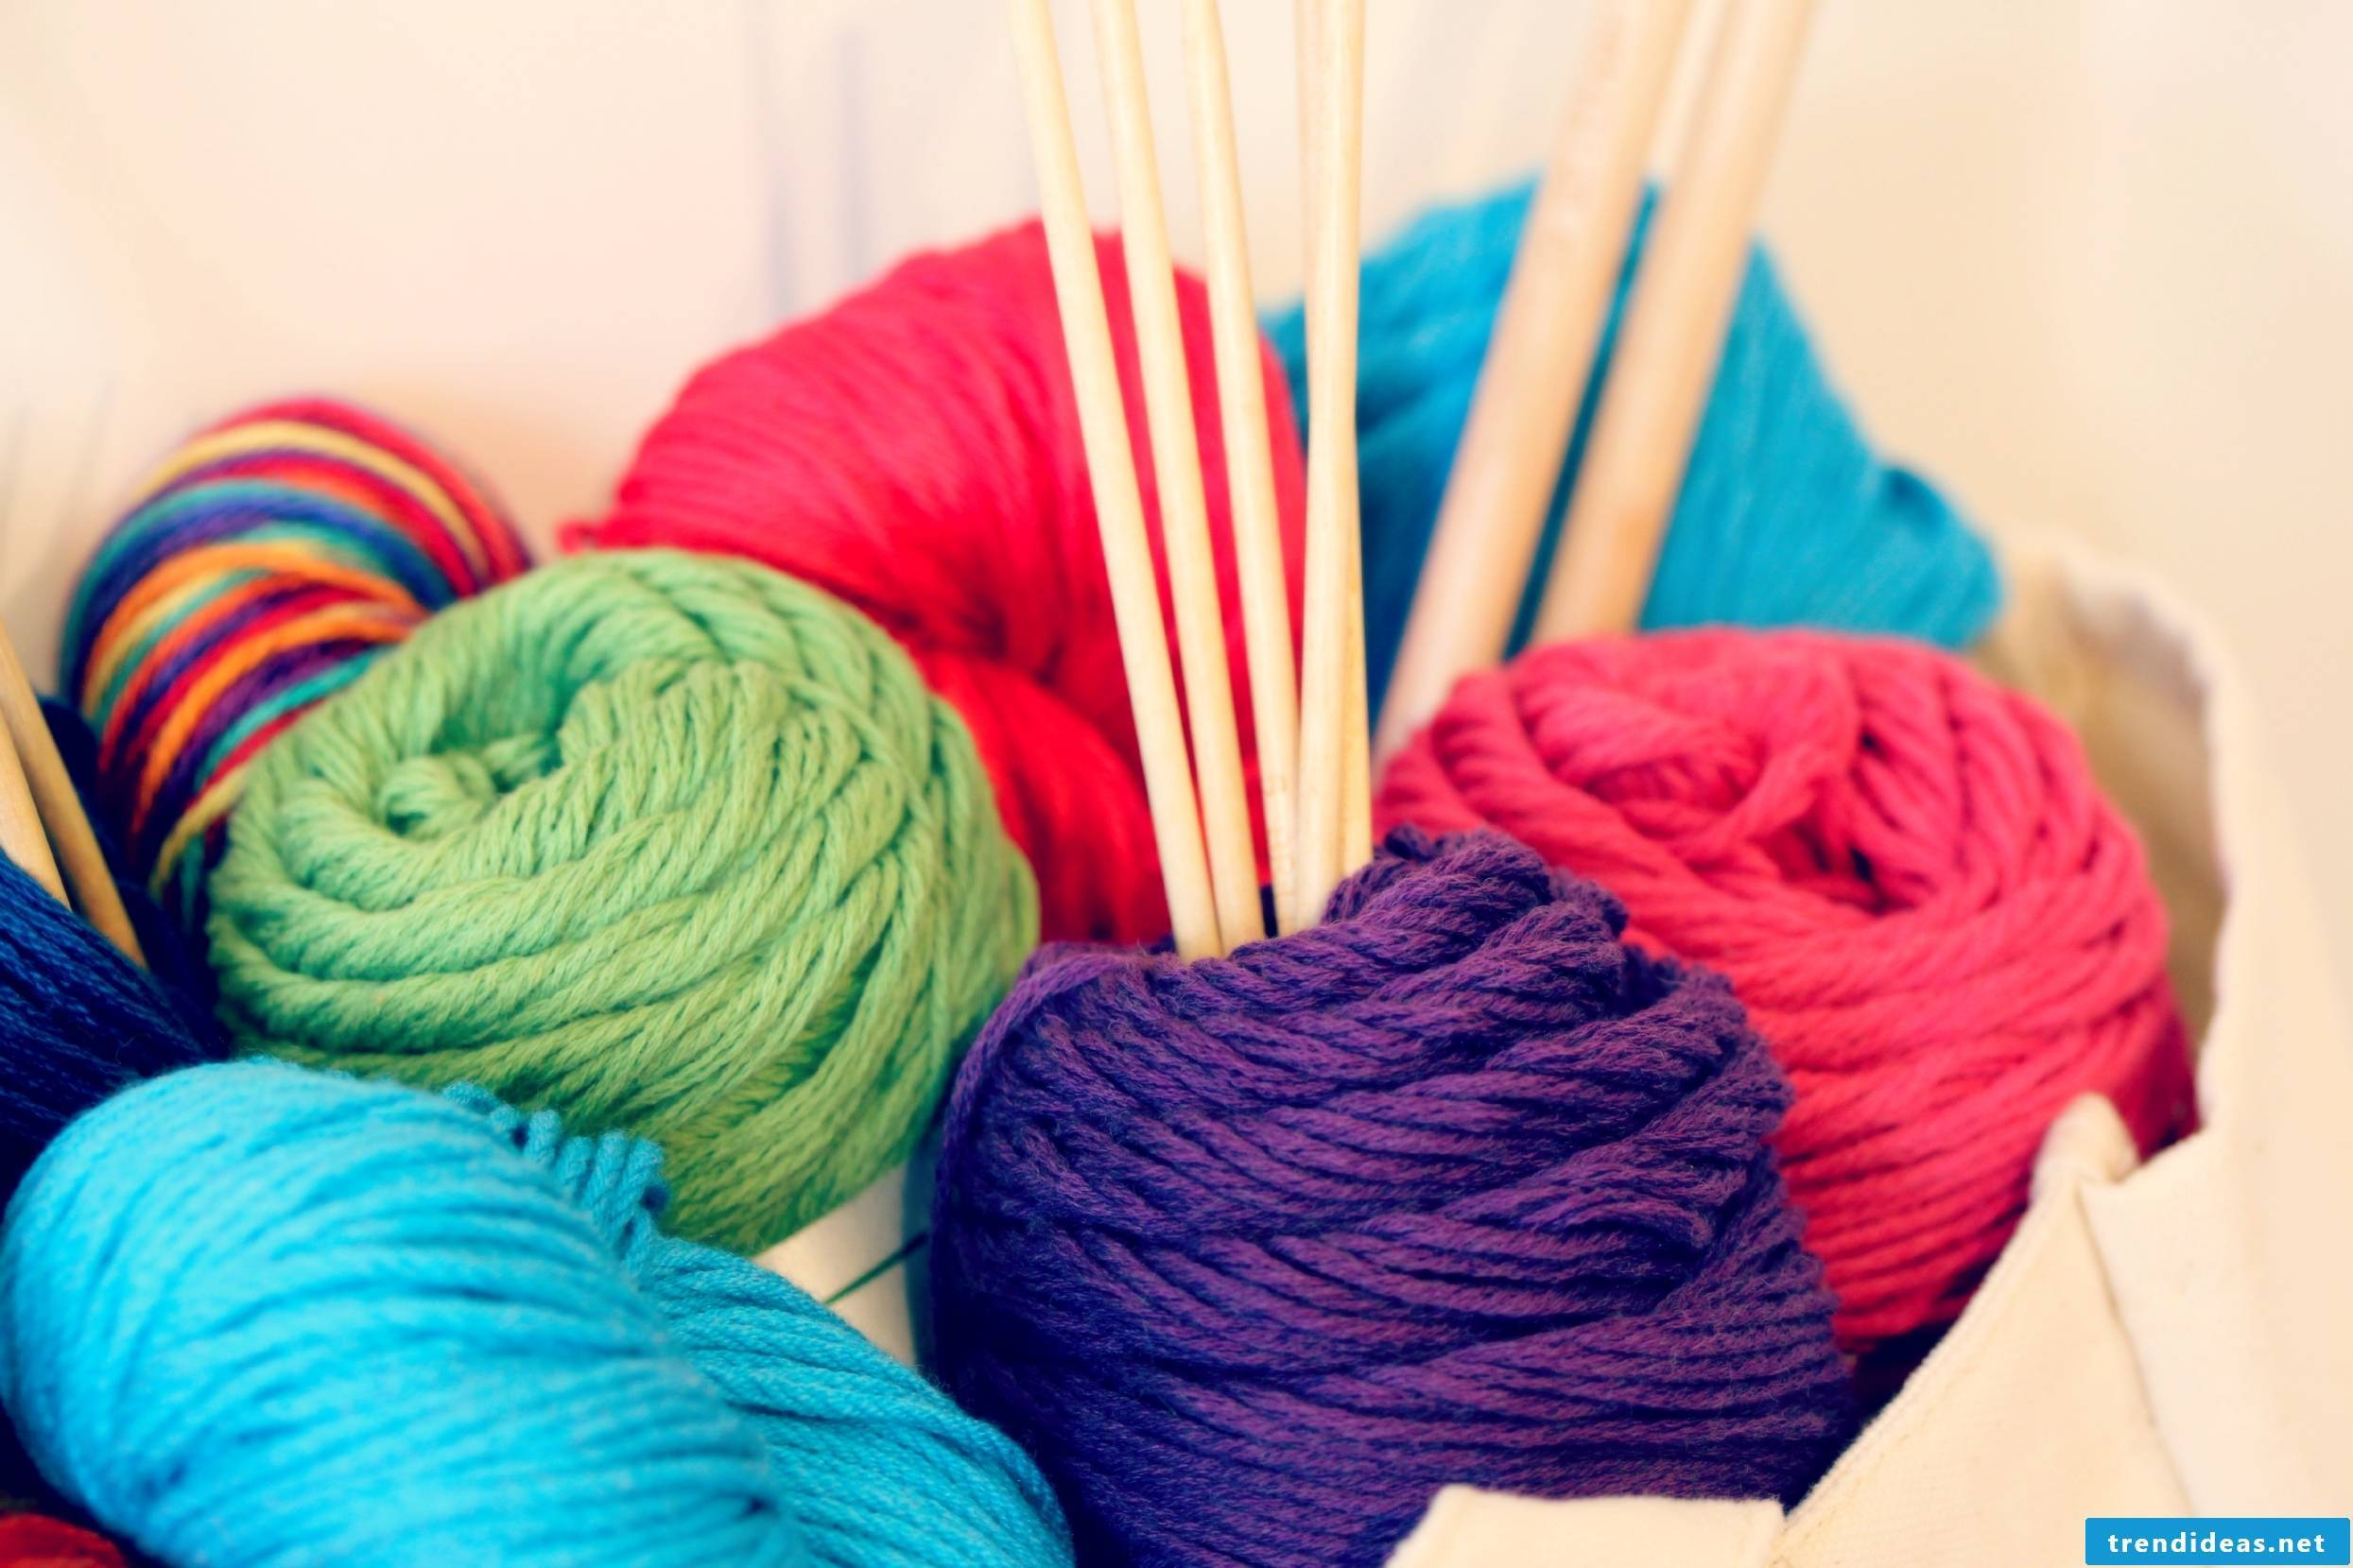 What do you need to knit a scarf yourself?